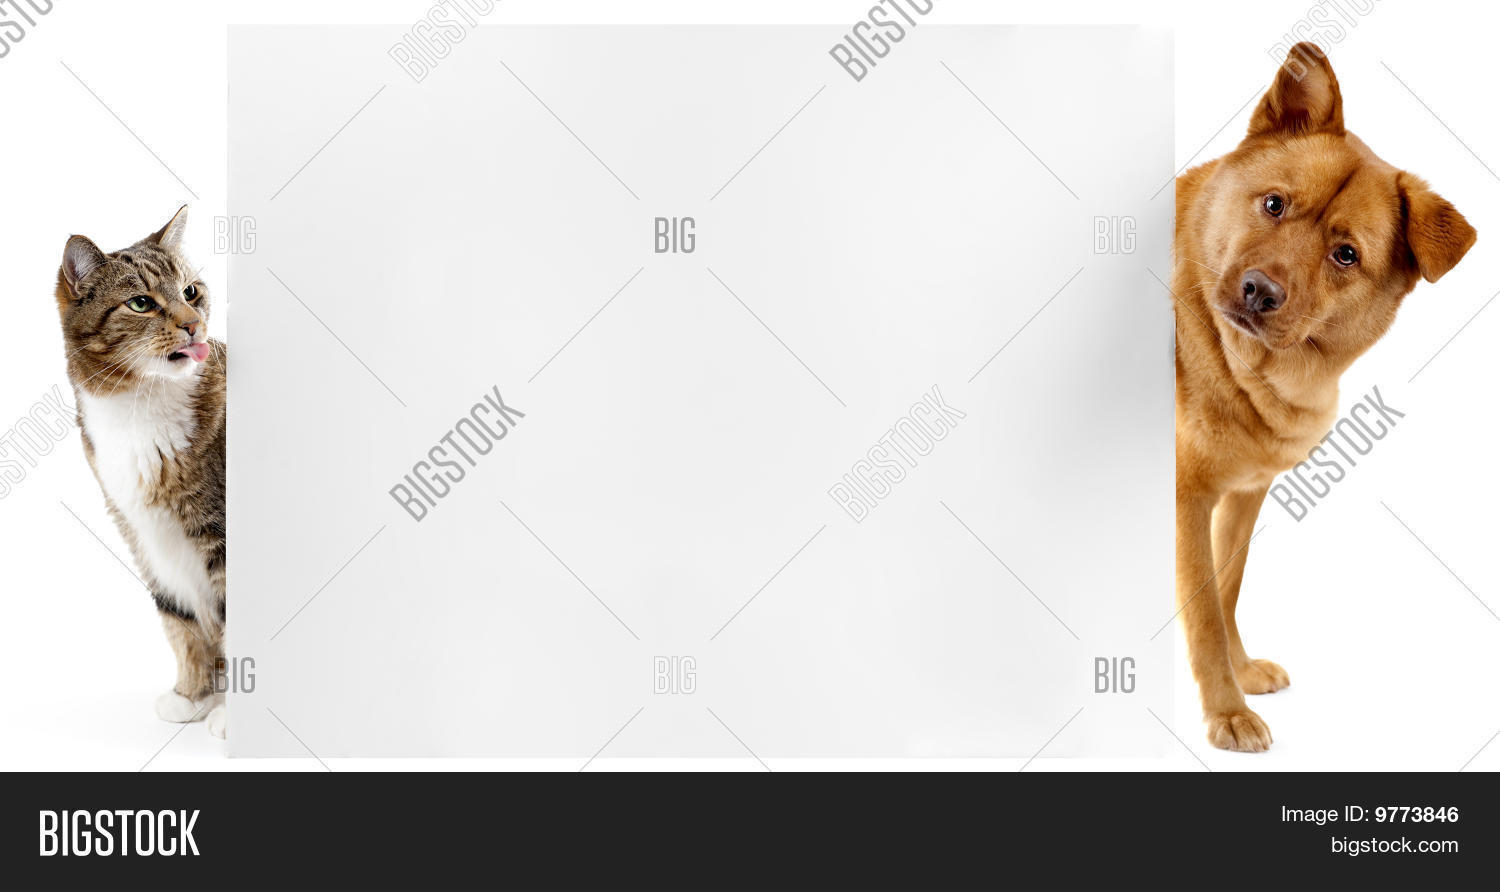 Cat Dog Banner Image Photo Free Trial Bigstock